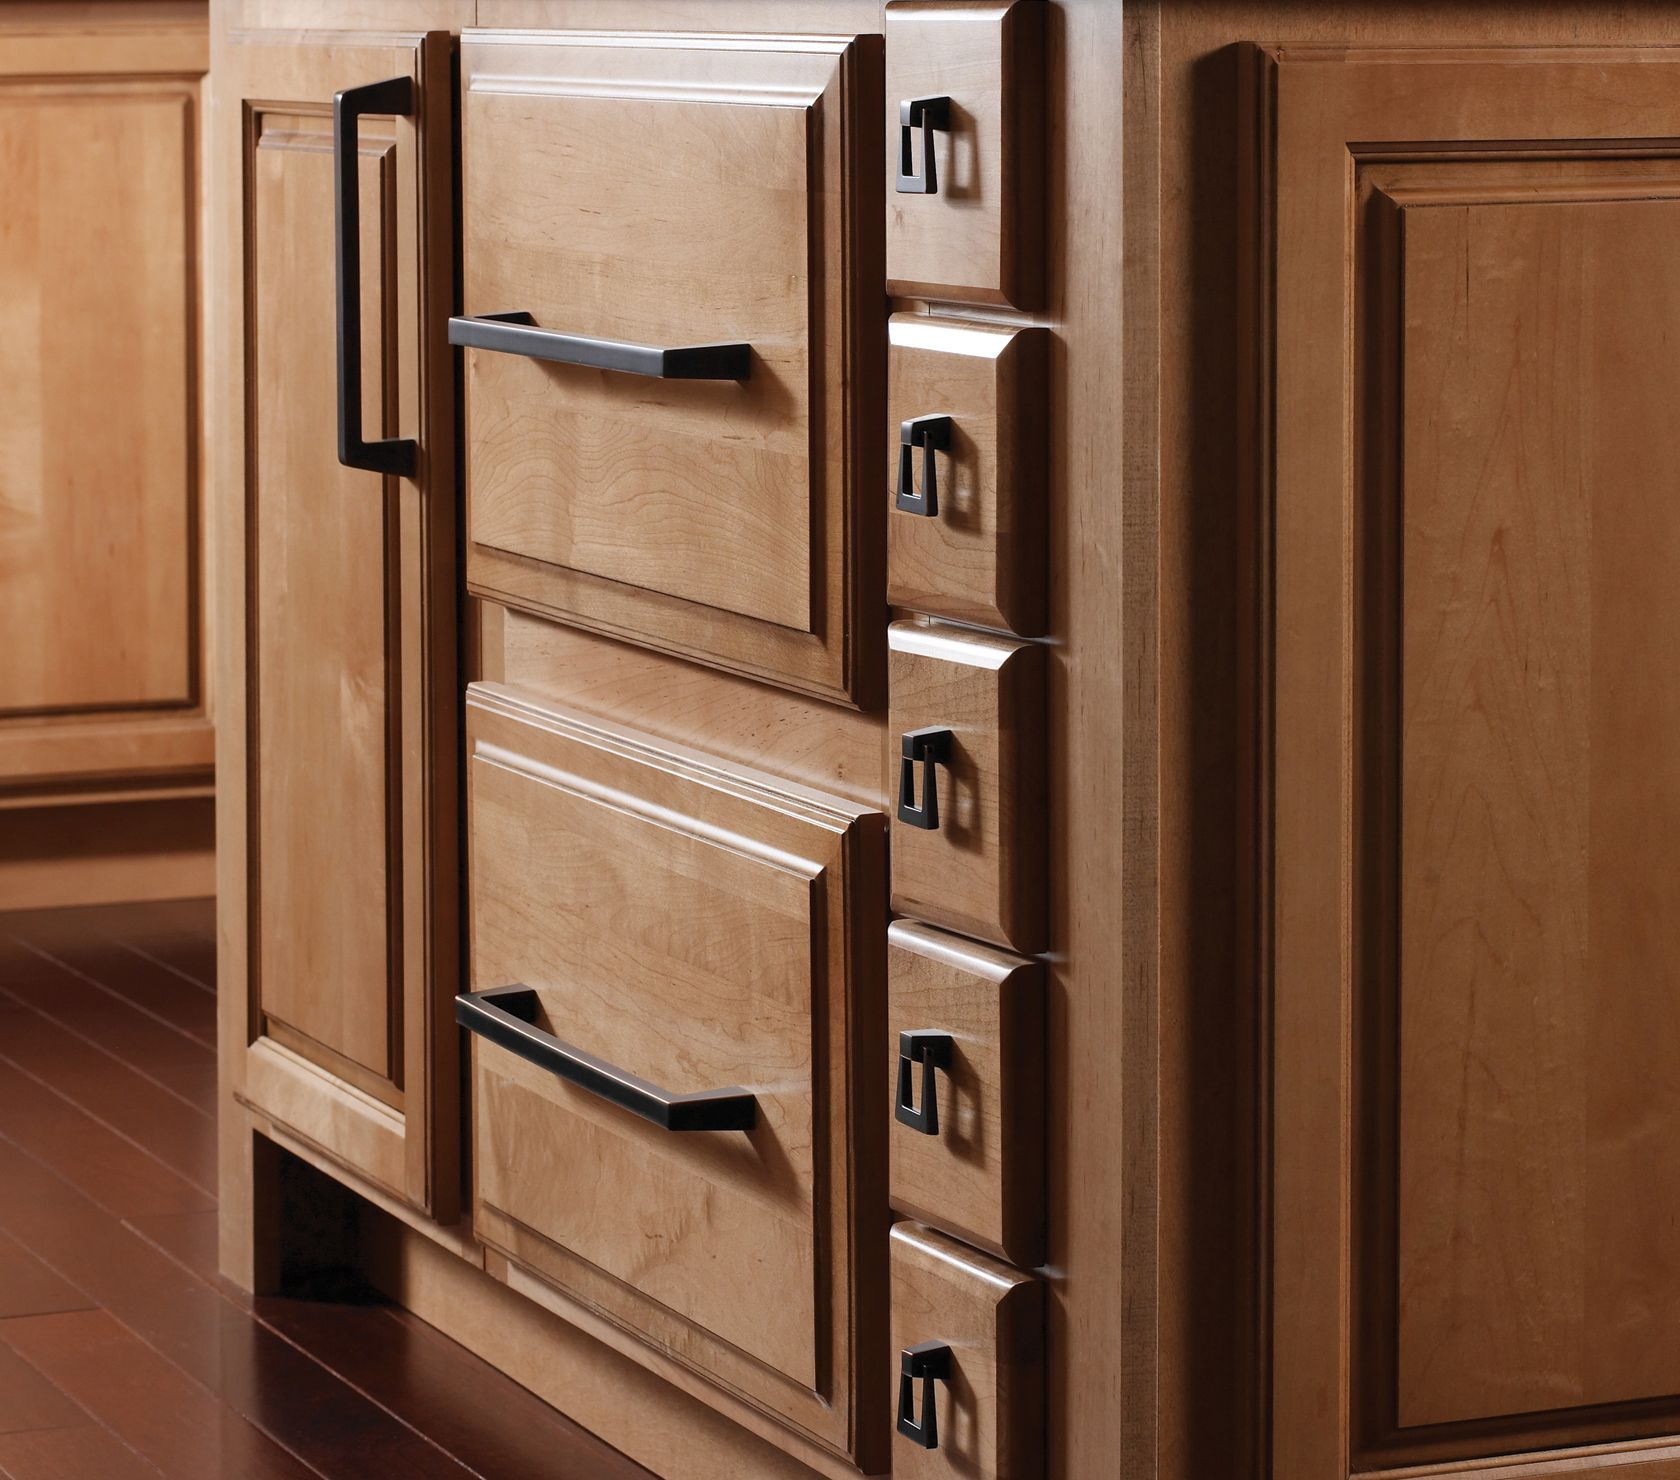 Kitchen Drawer Pulls Oil Rubbed Bronze opulence cabinet with astonishing amerock hardware: stunning oil